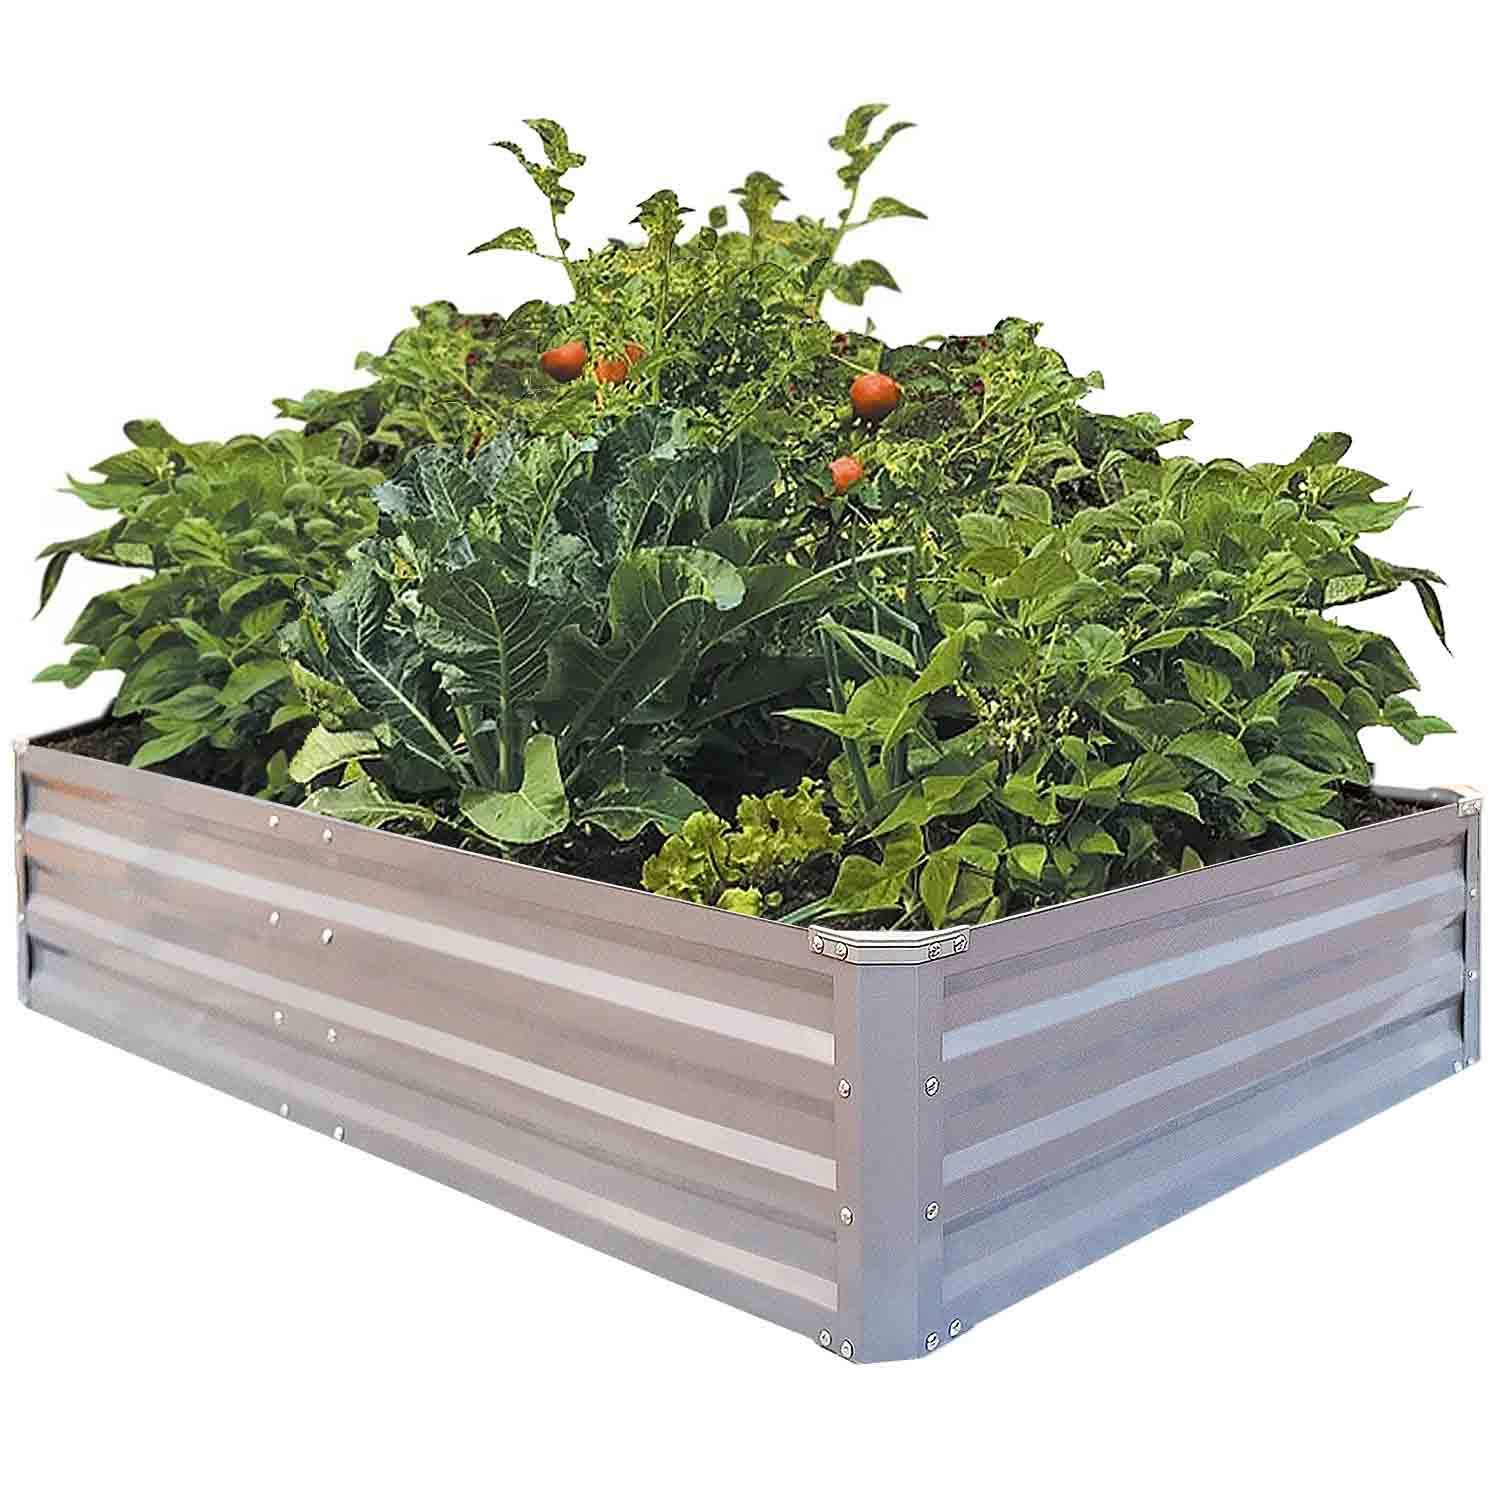 FOYUEE Galvanized Raised Garden Beds for Vegetables Metal Planter Boxes Outdoor Large Patio Bed Kit Planting Herb